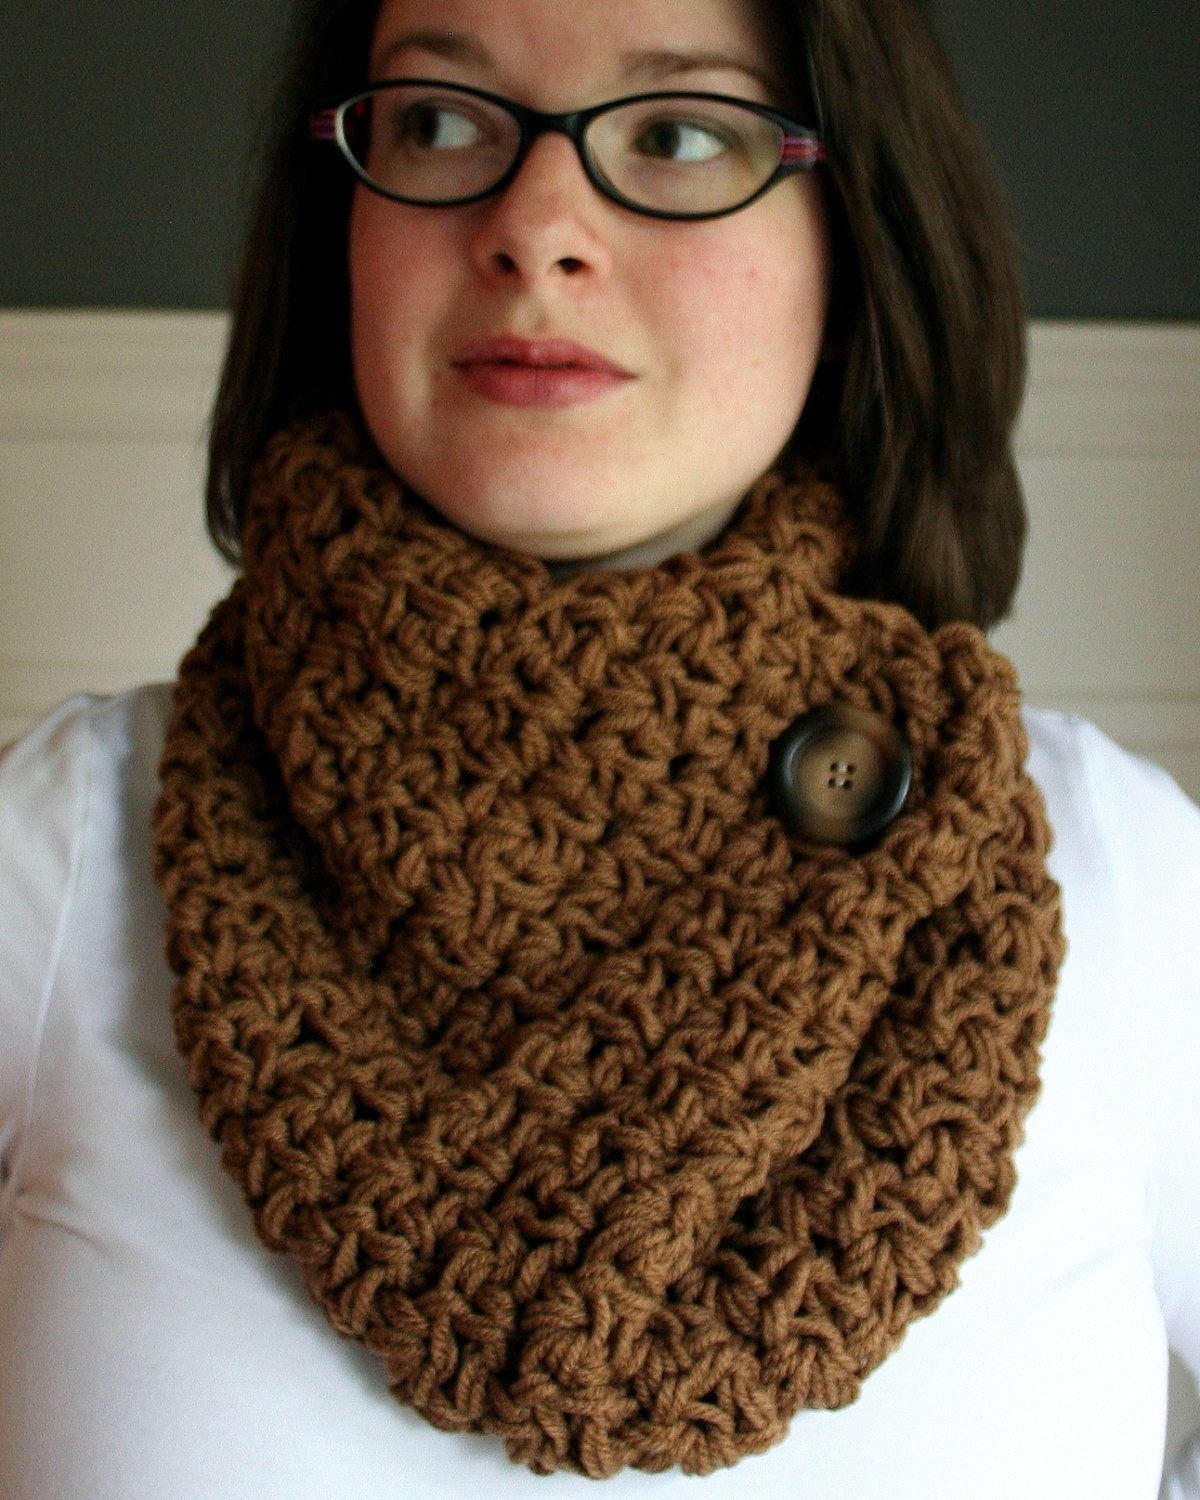 Crochet scarves crocheted cowl neck scarf in mocha brown with crochet scarves crocheted cowl neck scarf in mocha brown with brown and tan button bankloansurffo Choice Image